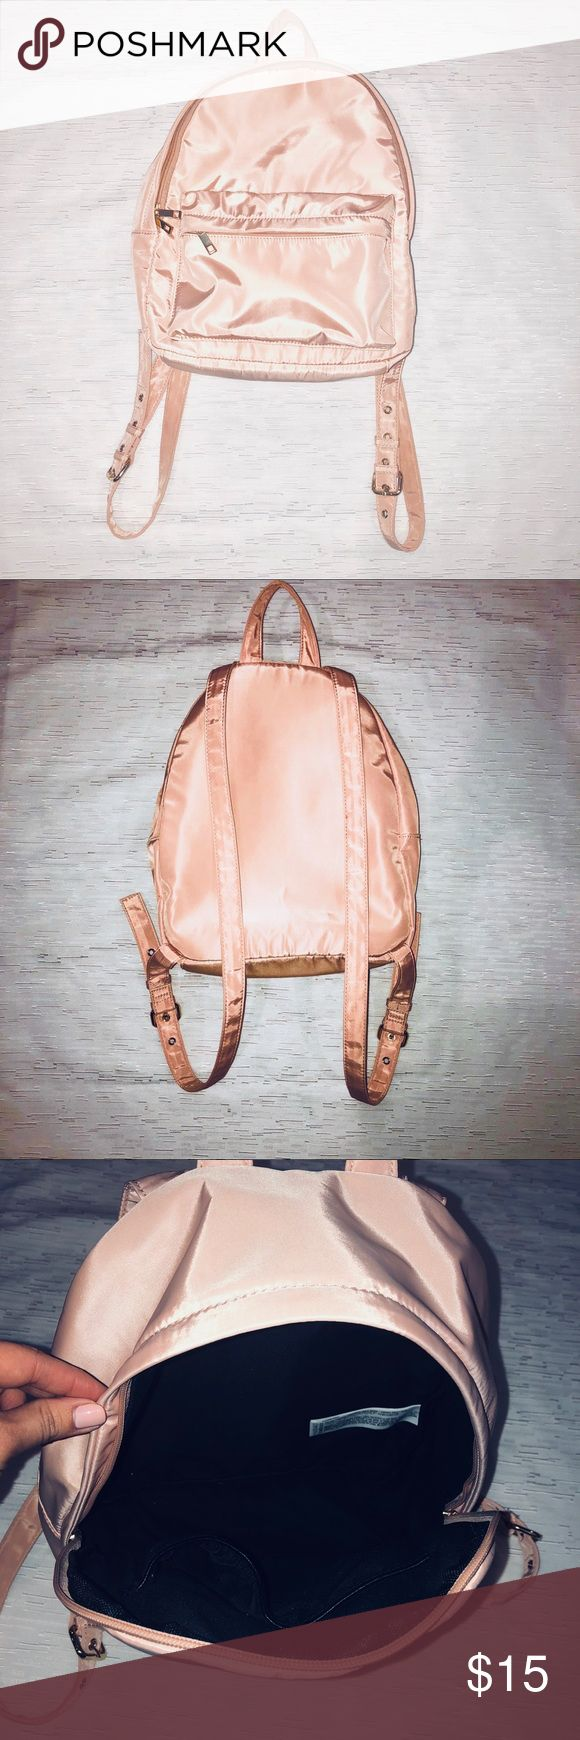 "Forever 21 - light pink small back pack Forever 21 - Small light pink backpack.  Gold color hardware.  Adjustable straps.  14""H x 12"" L (approx). 1 exterior zip up pocket and two interior pockets. In excellent used condition, worn once! From pet and smoke free home. Forever 21 Bags Backpacks"